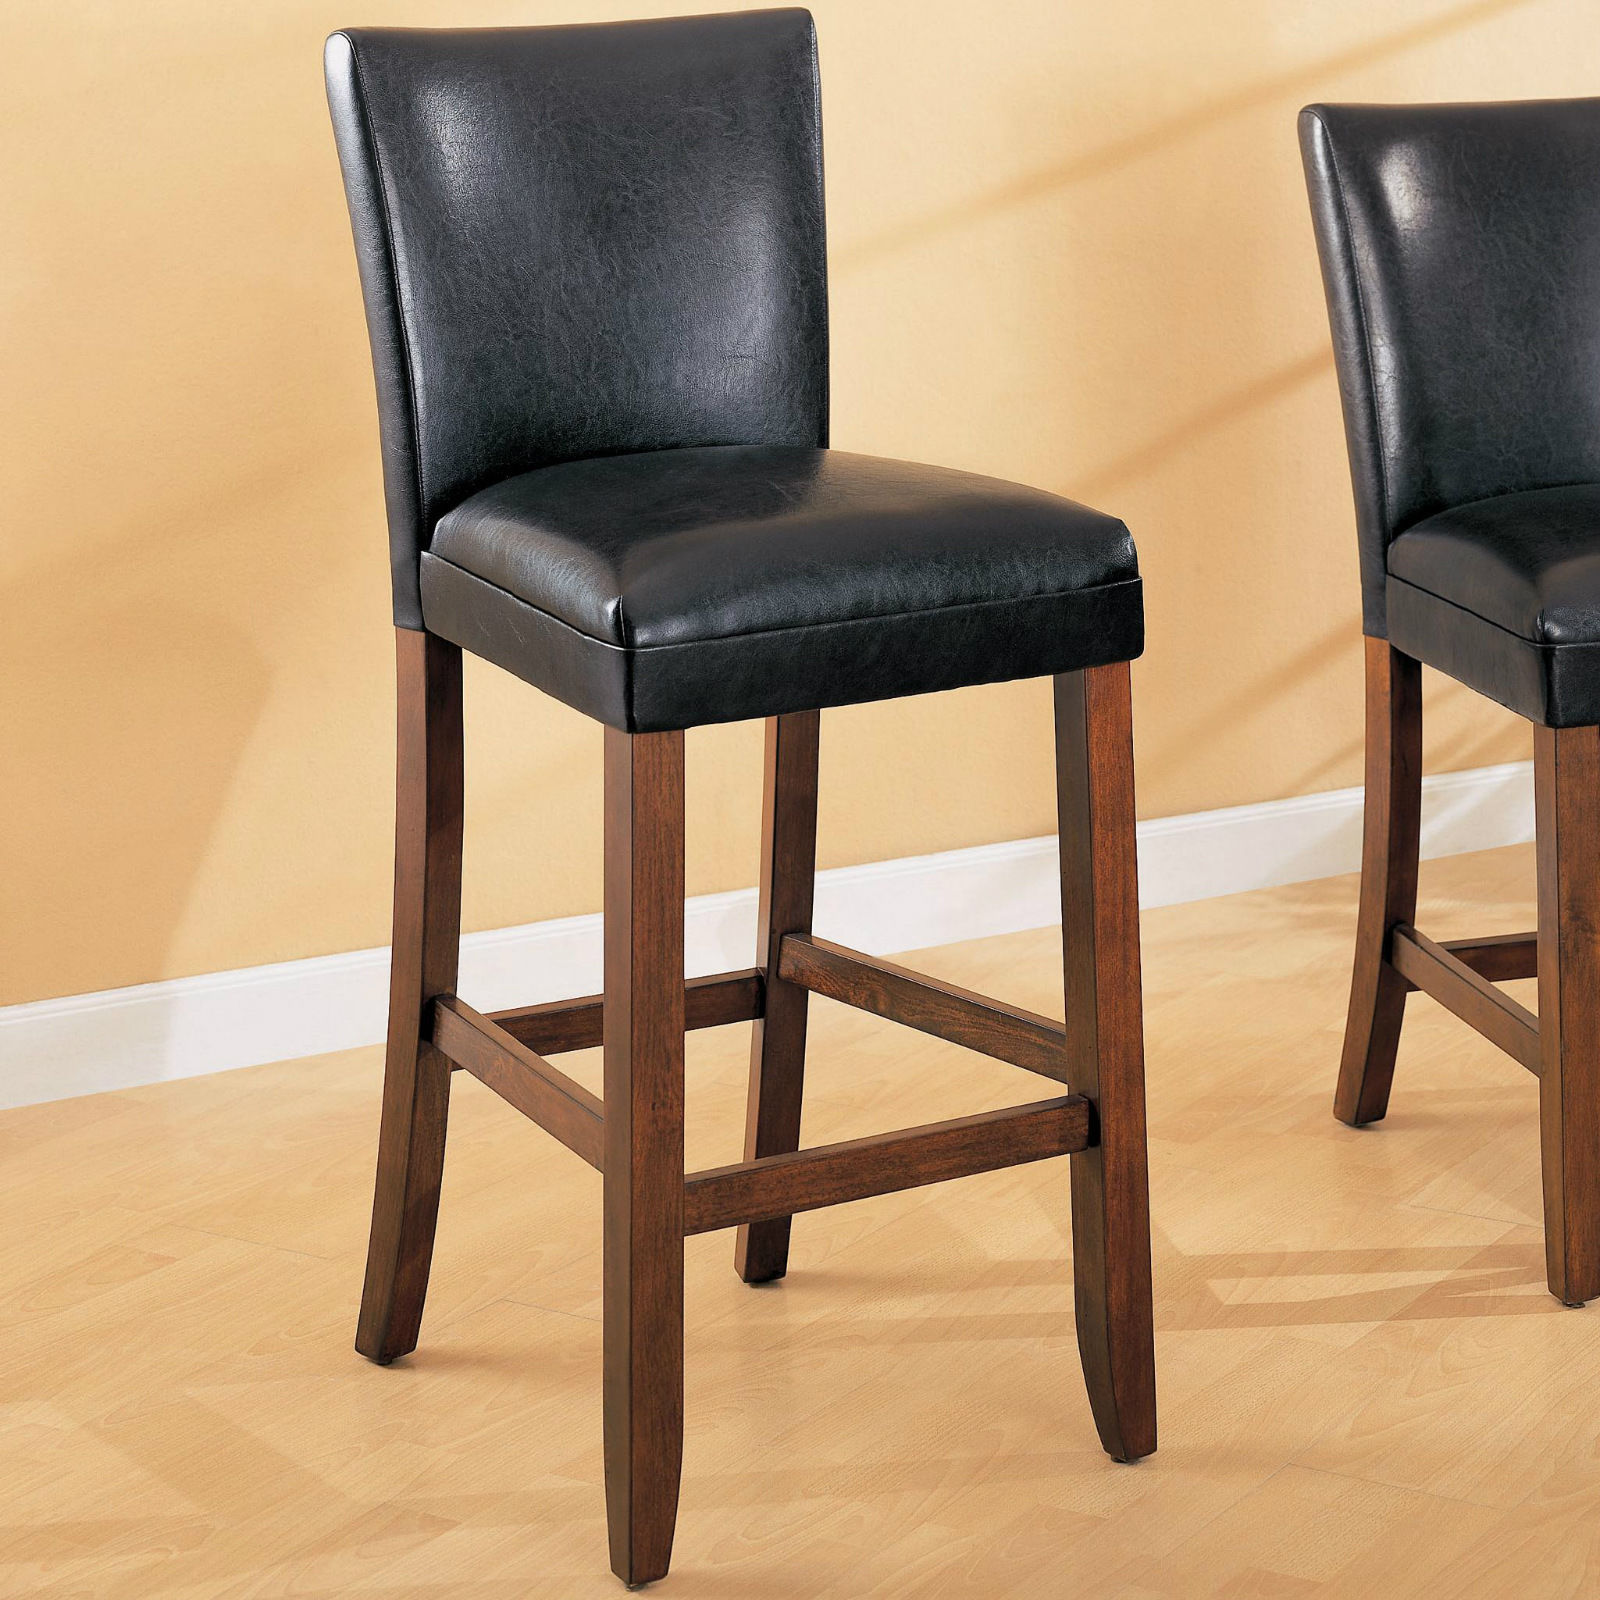 "29"" Faux Black Leather Bar Stool Chair"